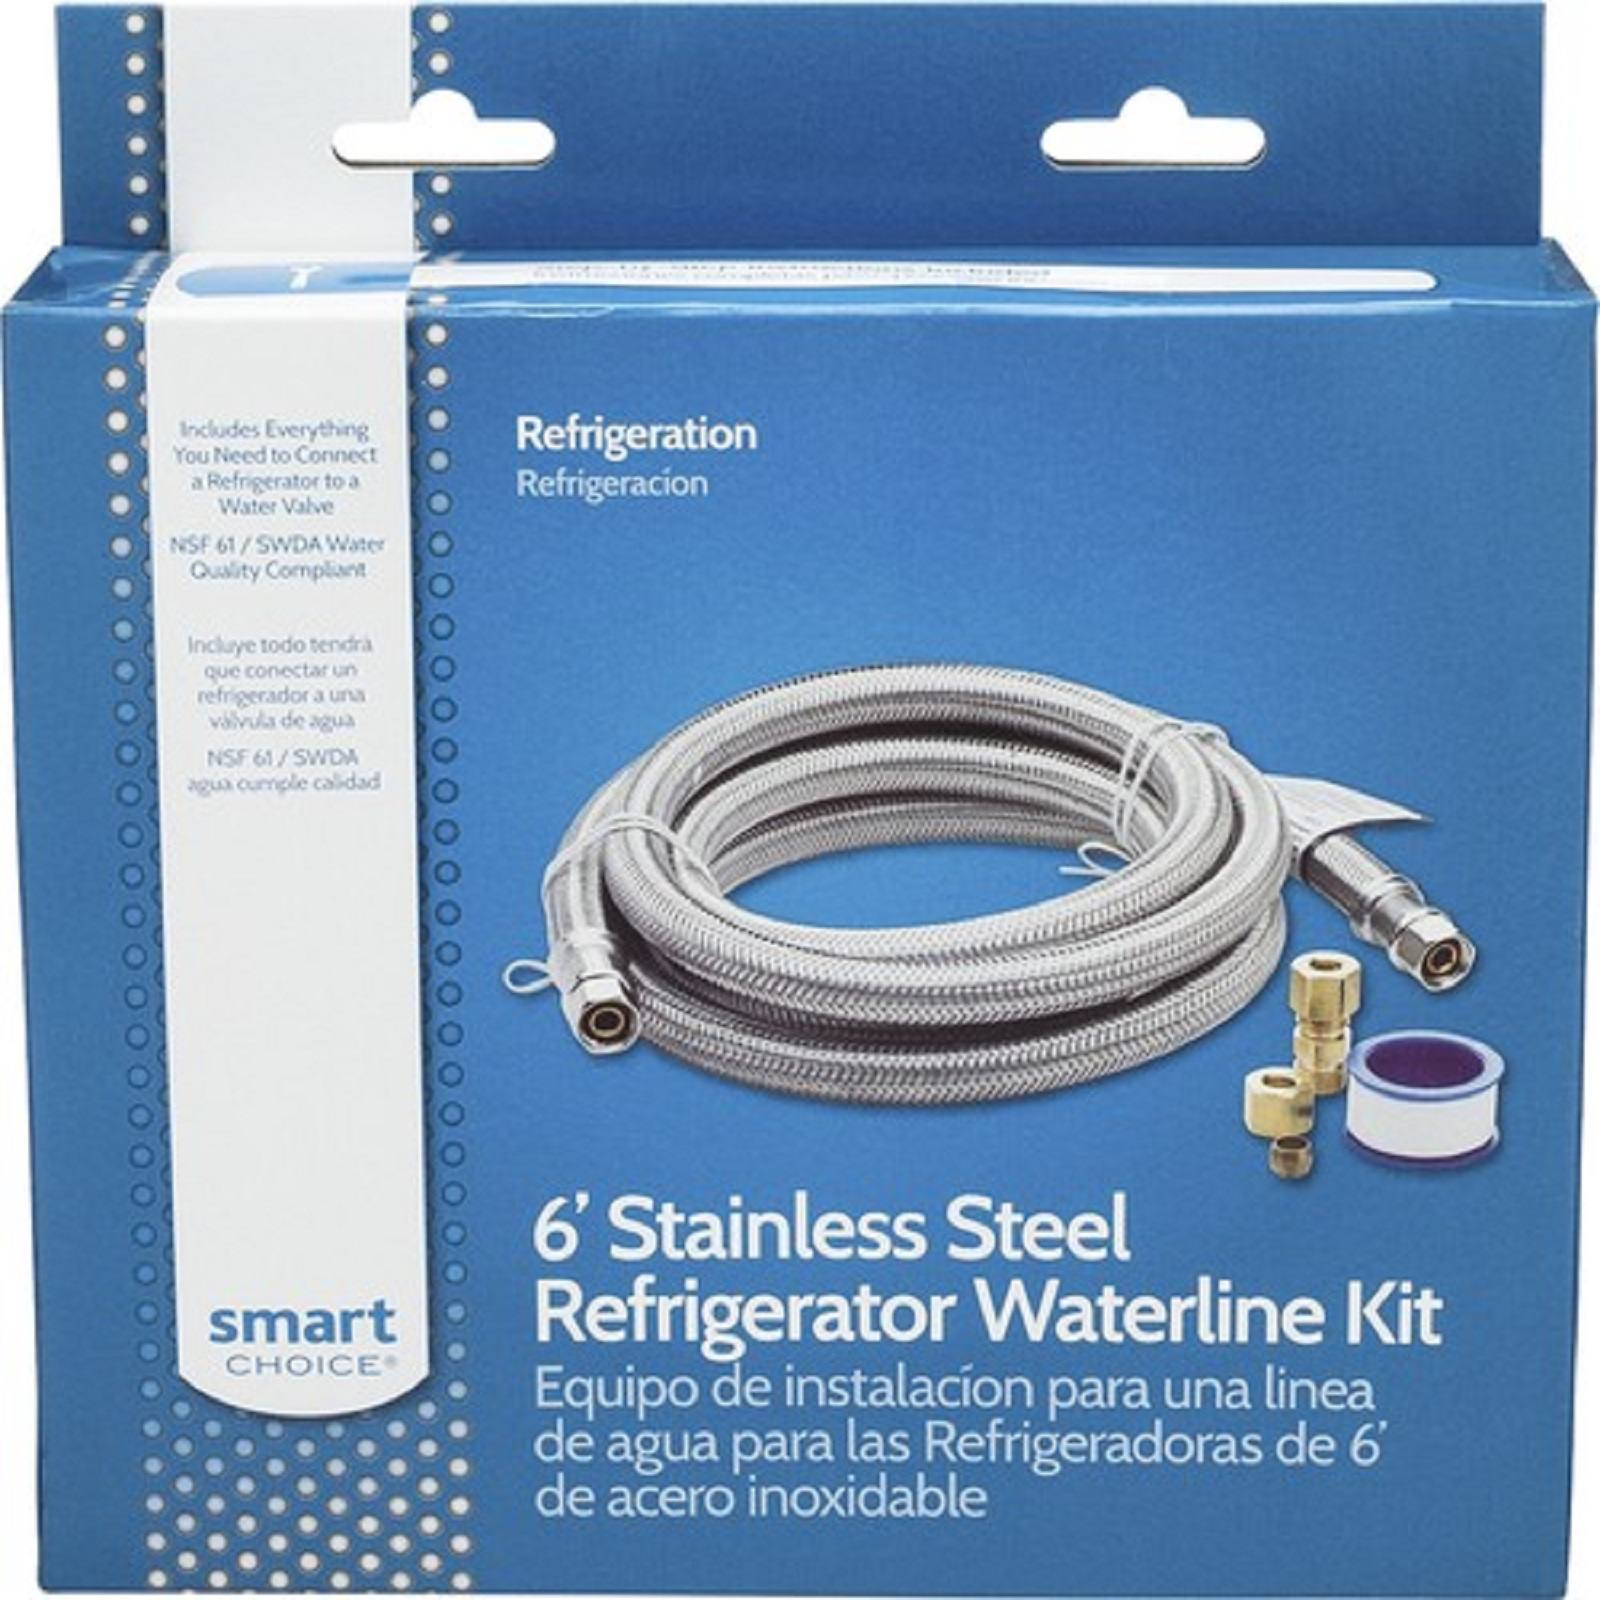 Frigidaire 33000 Smart Choice 6' Stainless Steel Refrigerator Waterline Kit